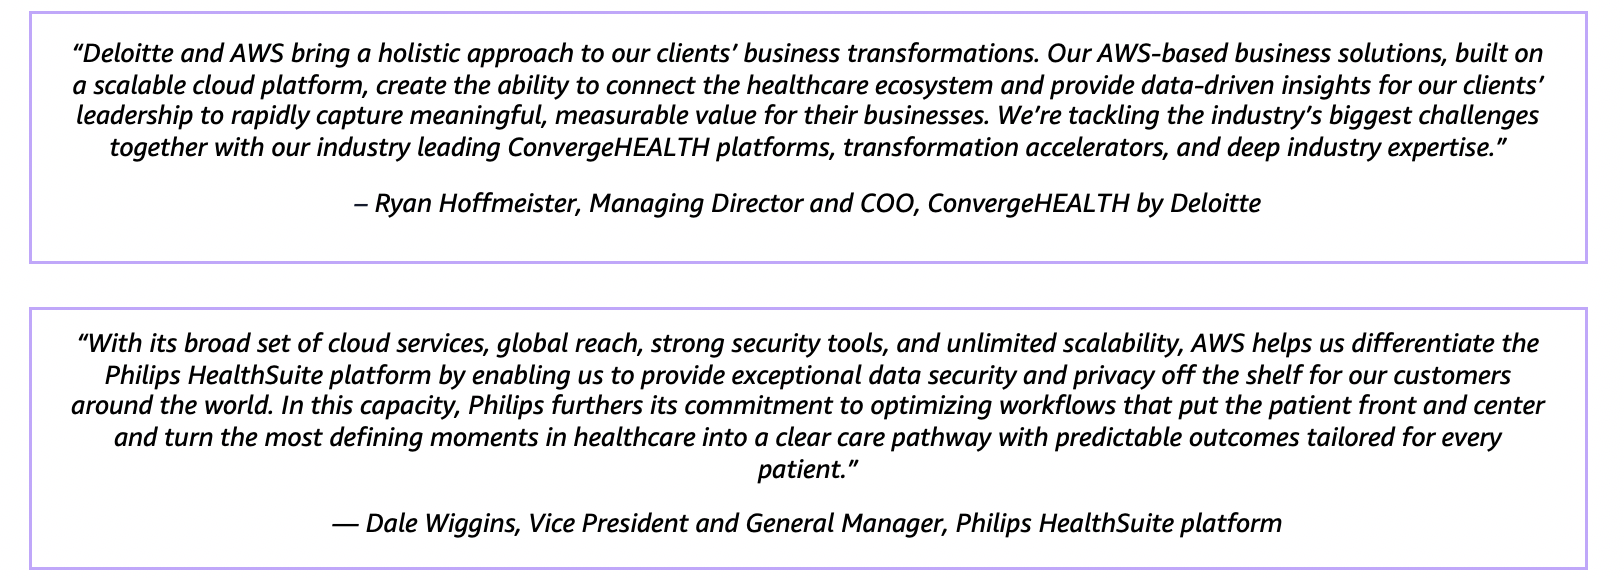 """""""With its broad set of cloud services, global reach, strong security tools, and unlimited scalability, AWS helps us differentiate the Philips HealthSuite platform by enabling us to provide exceptional data security and privacy off the shelf for our customers around the world. In this capacity, Philips furthers its commitment to optimizing workflows that put the patient front and center and turn the most defining moments in healthcare into a clear care pathway with predictable outcomes tailored for every patient."""" — Dale Wiggins, Vice President and General Manager, Philips HealthSuite platform"""